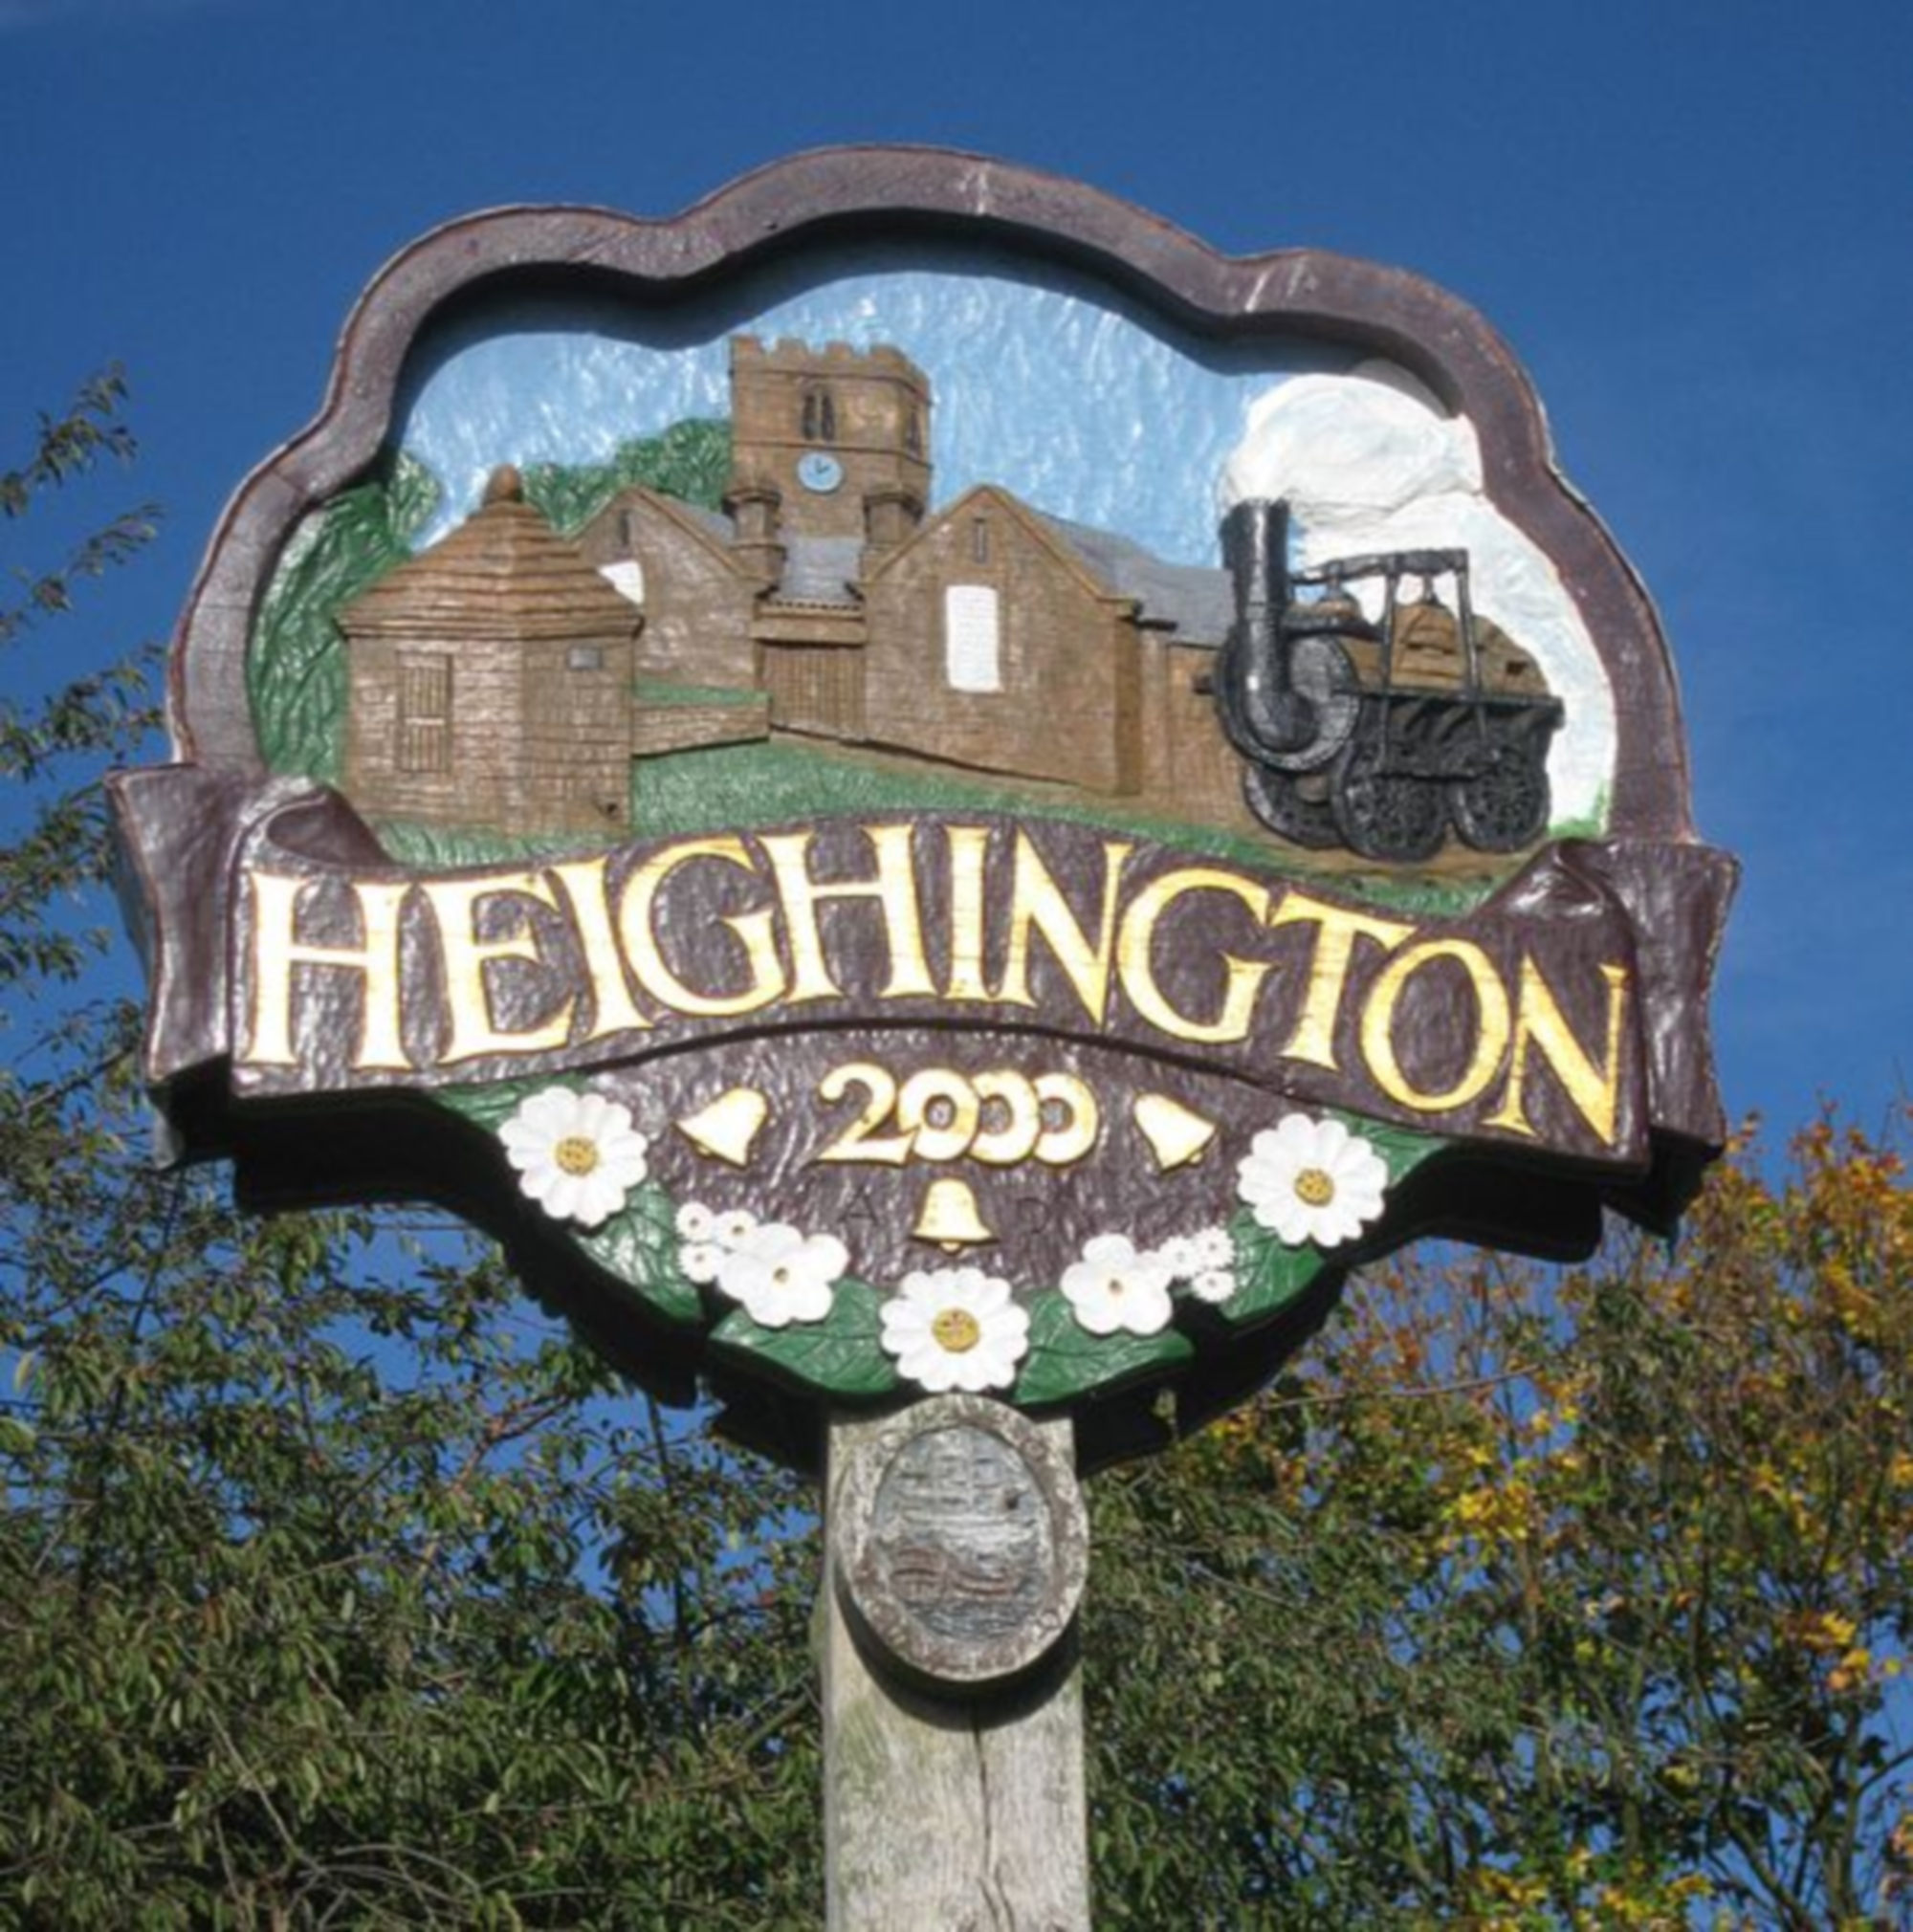 Volunteers needed in Heighington